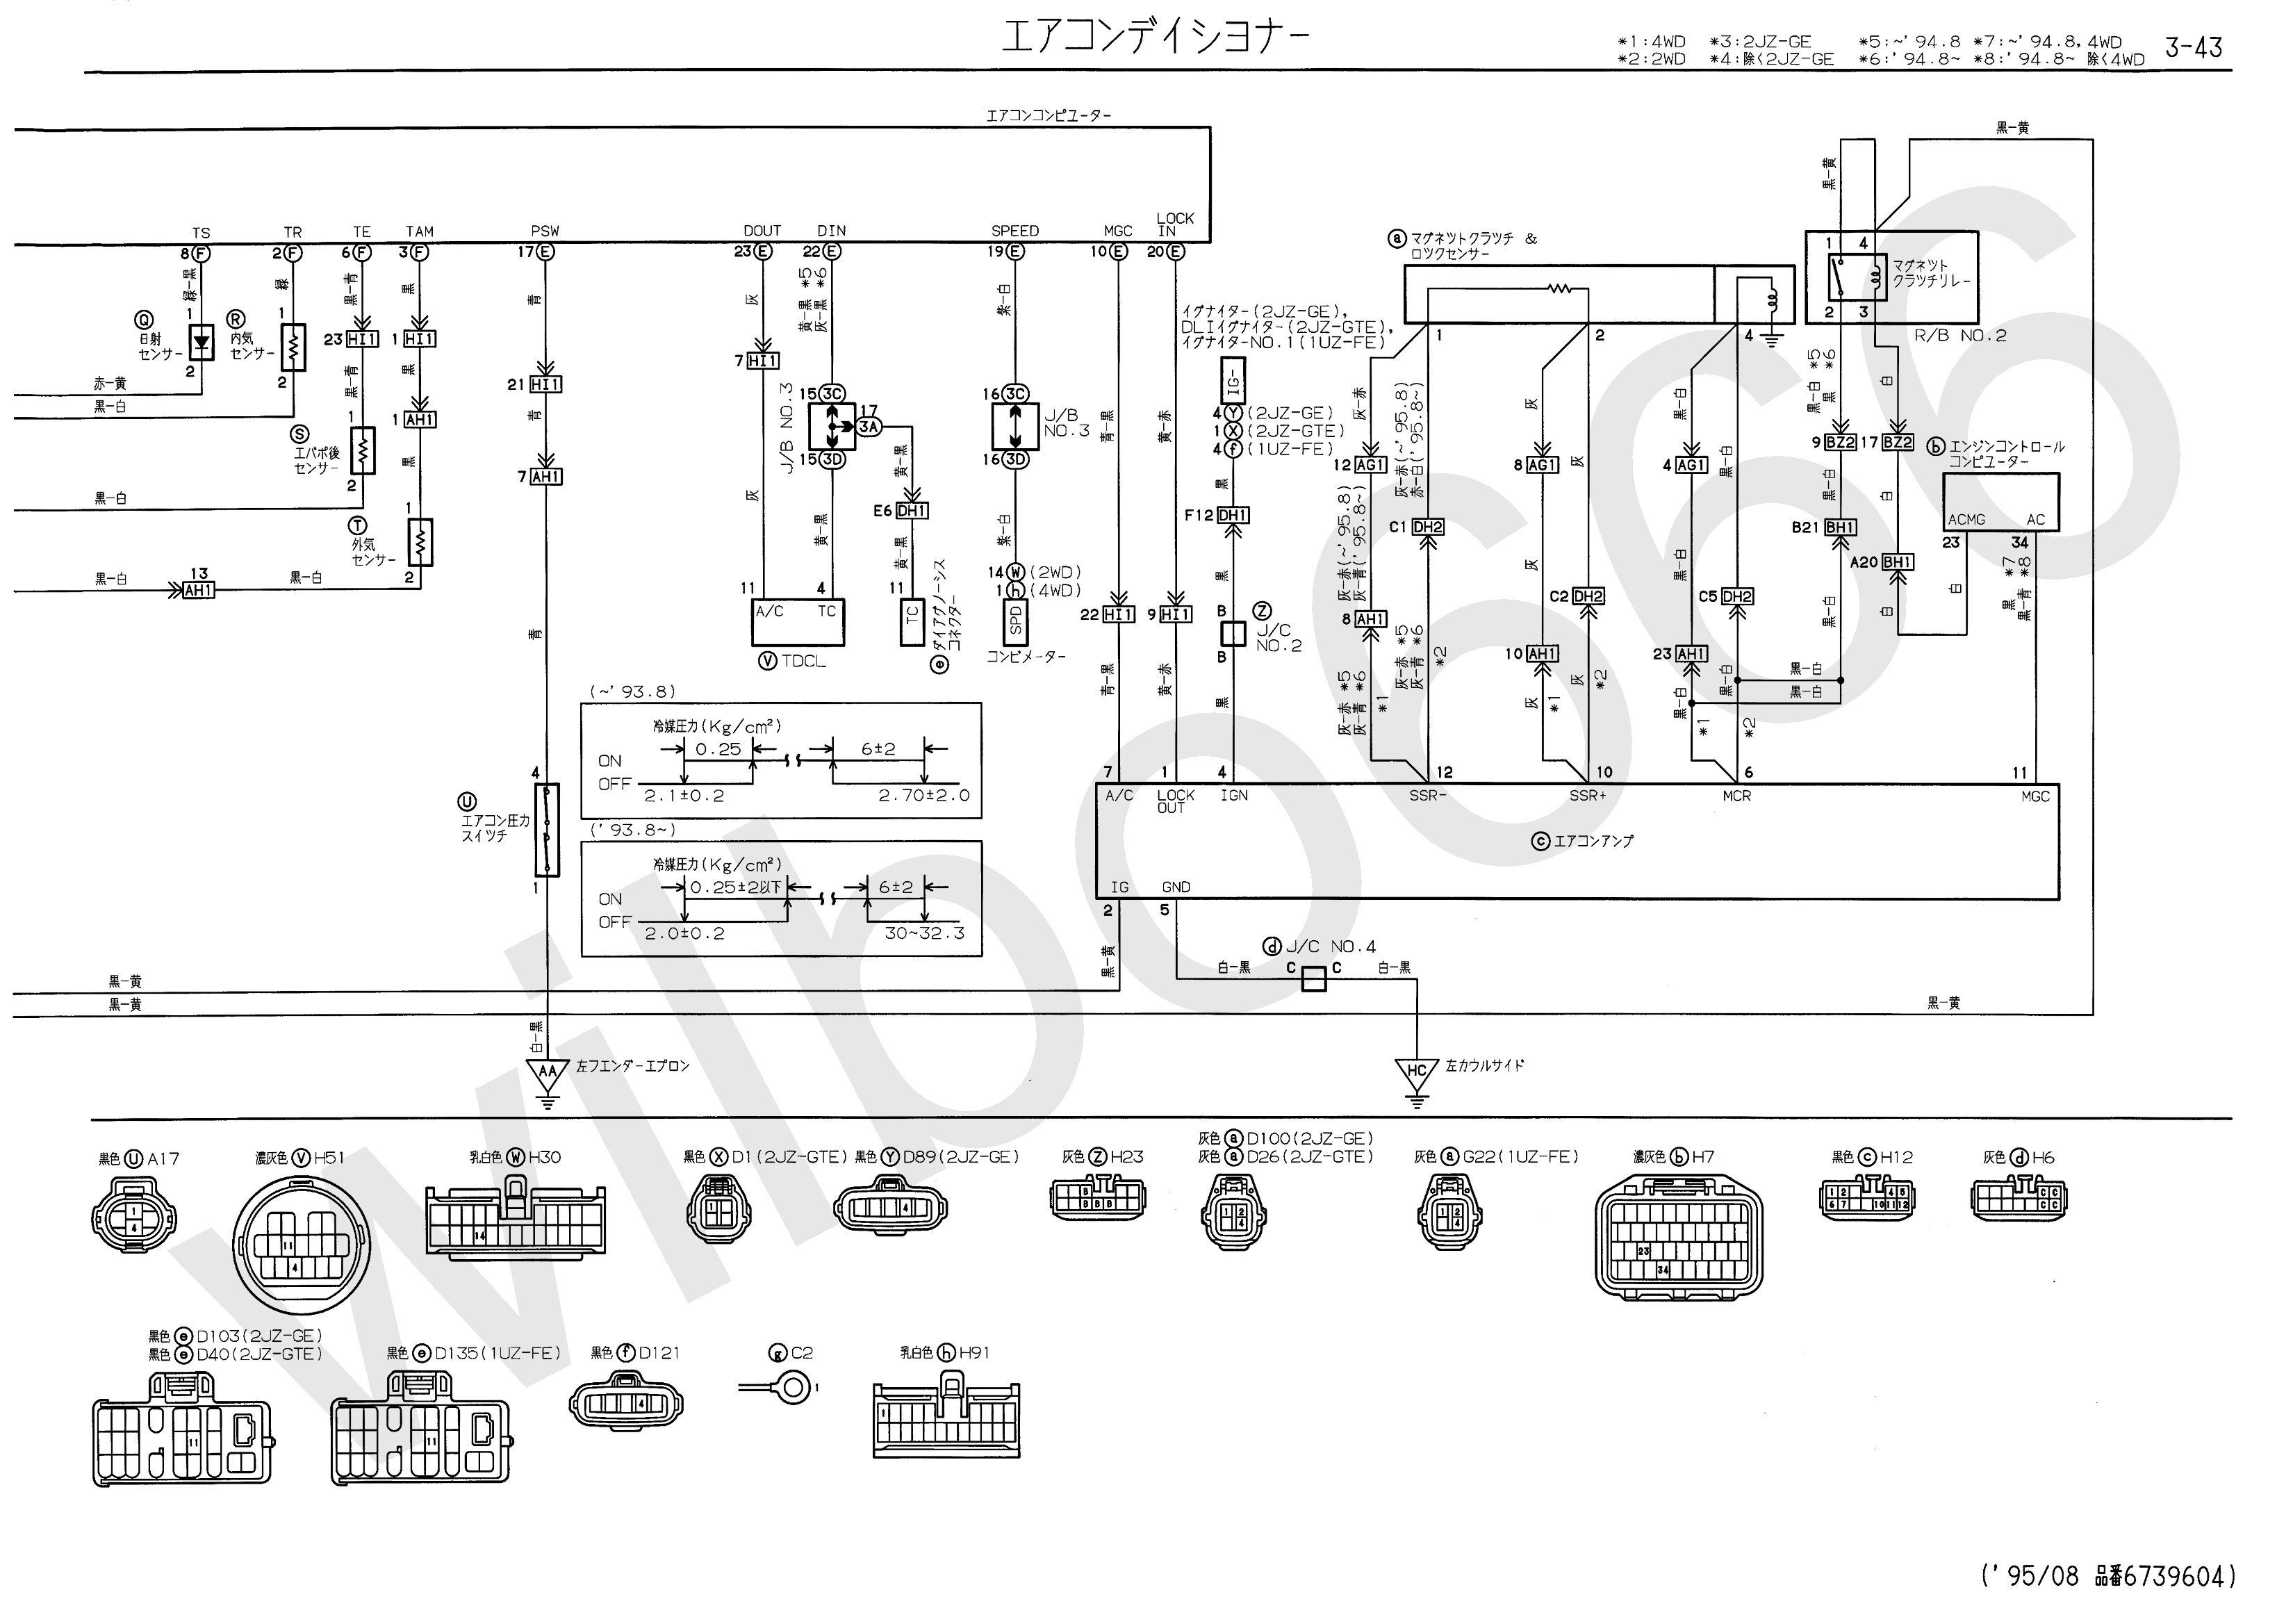 Wilbo666 2jz Gte Jzs147 Aristo Engine Wiring Control Circuit Diagrams Motor Repalcement Parts And Diagram Toyota Nsw Sta